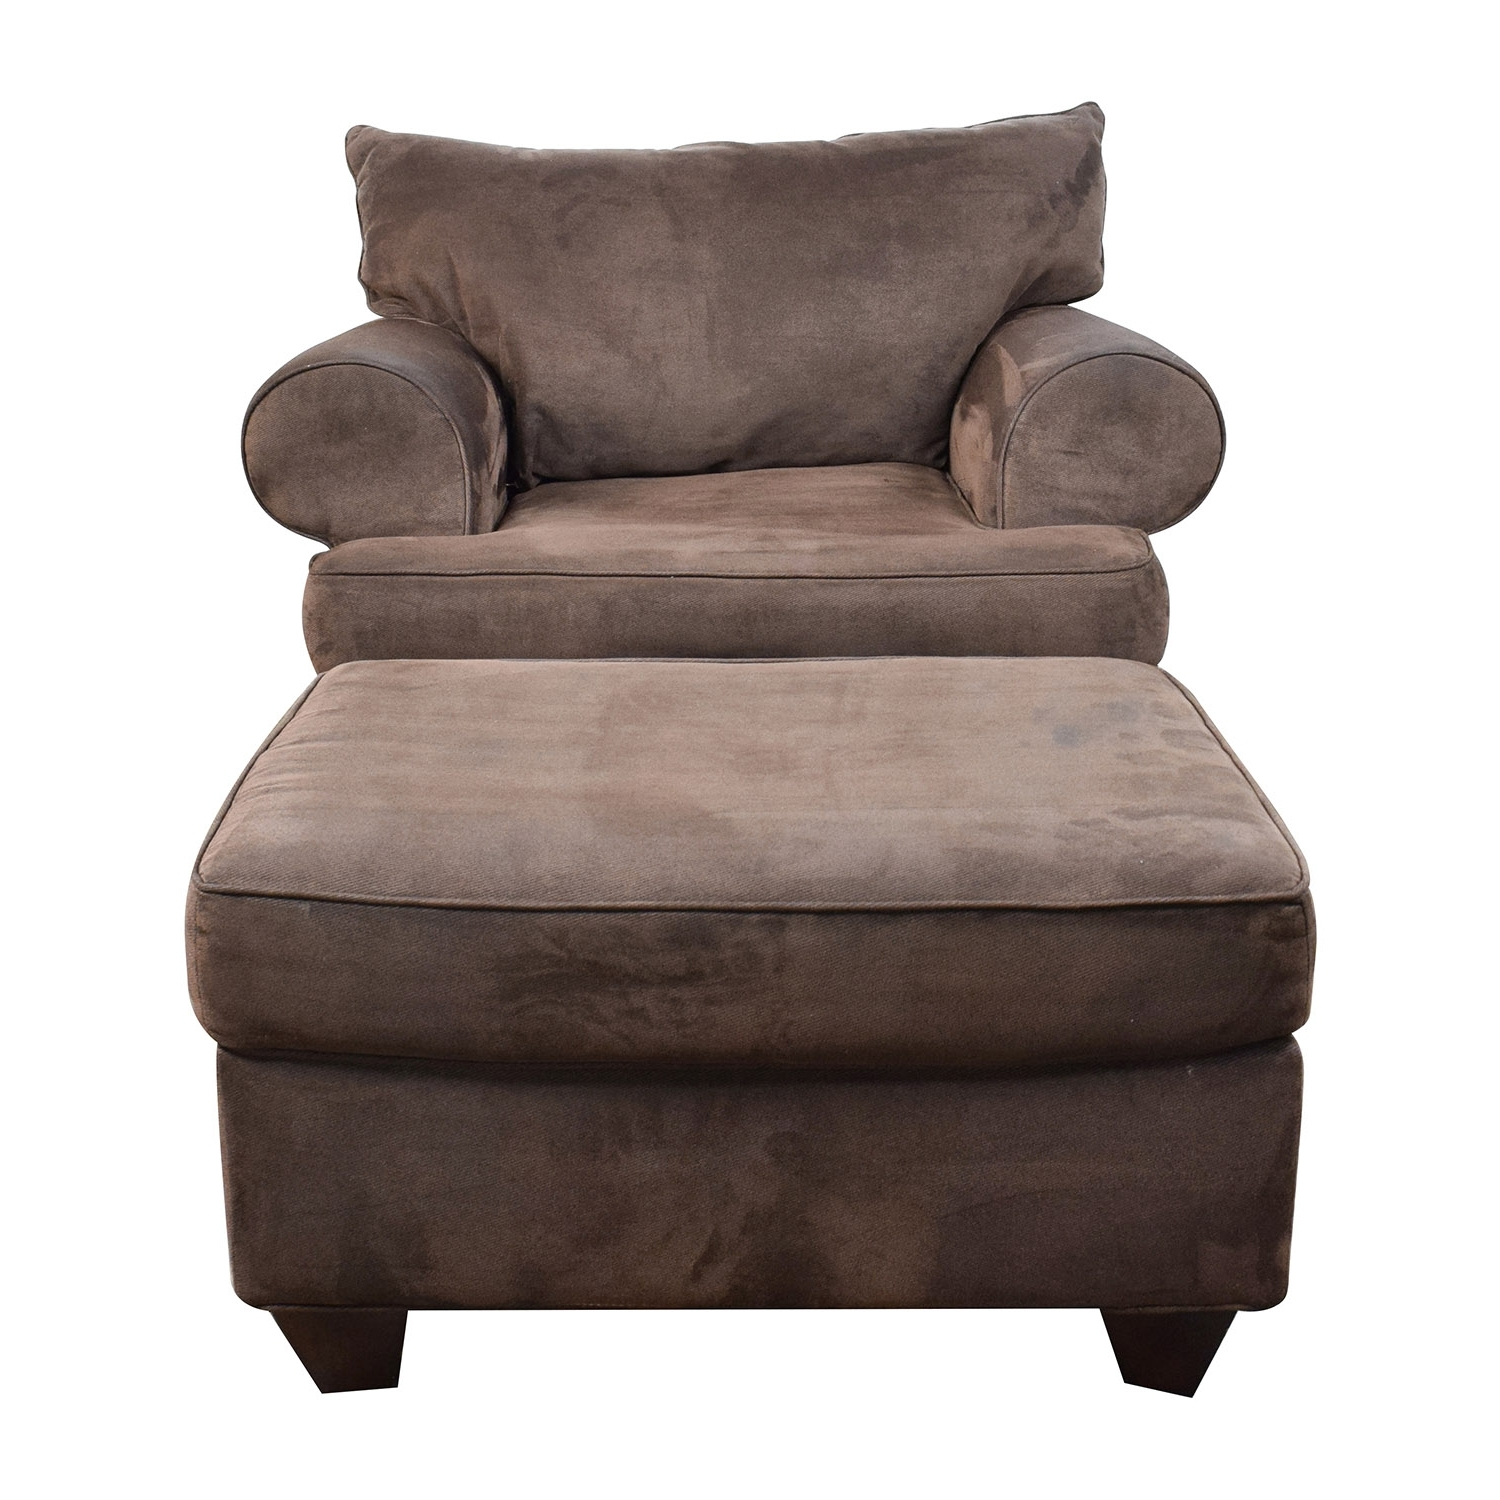 [%67% Off – Dark Brown Sofa Chair With Ottoman / Chairs In Famous Chairs With Ottoman|Chairs With Ottoman With Favorite 67% Off – Dark Brown Sofa Chair With Ottoman / Chairs|Widely Used Chairs With Ottoman For 67% Off – Dark Brown Sofa Chair With Ottoman / Chairs|Well Known 67% Off – Dark Brown Sofa Chair With Ottoman / Chairs For Chairs With Ottoman%] (View 2 of 20)